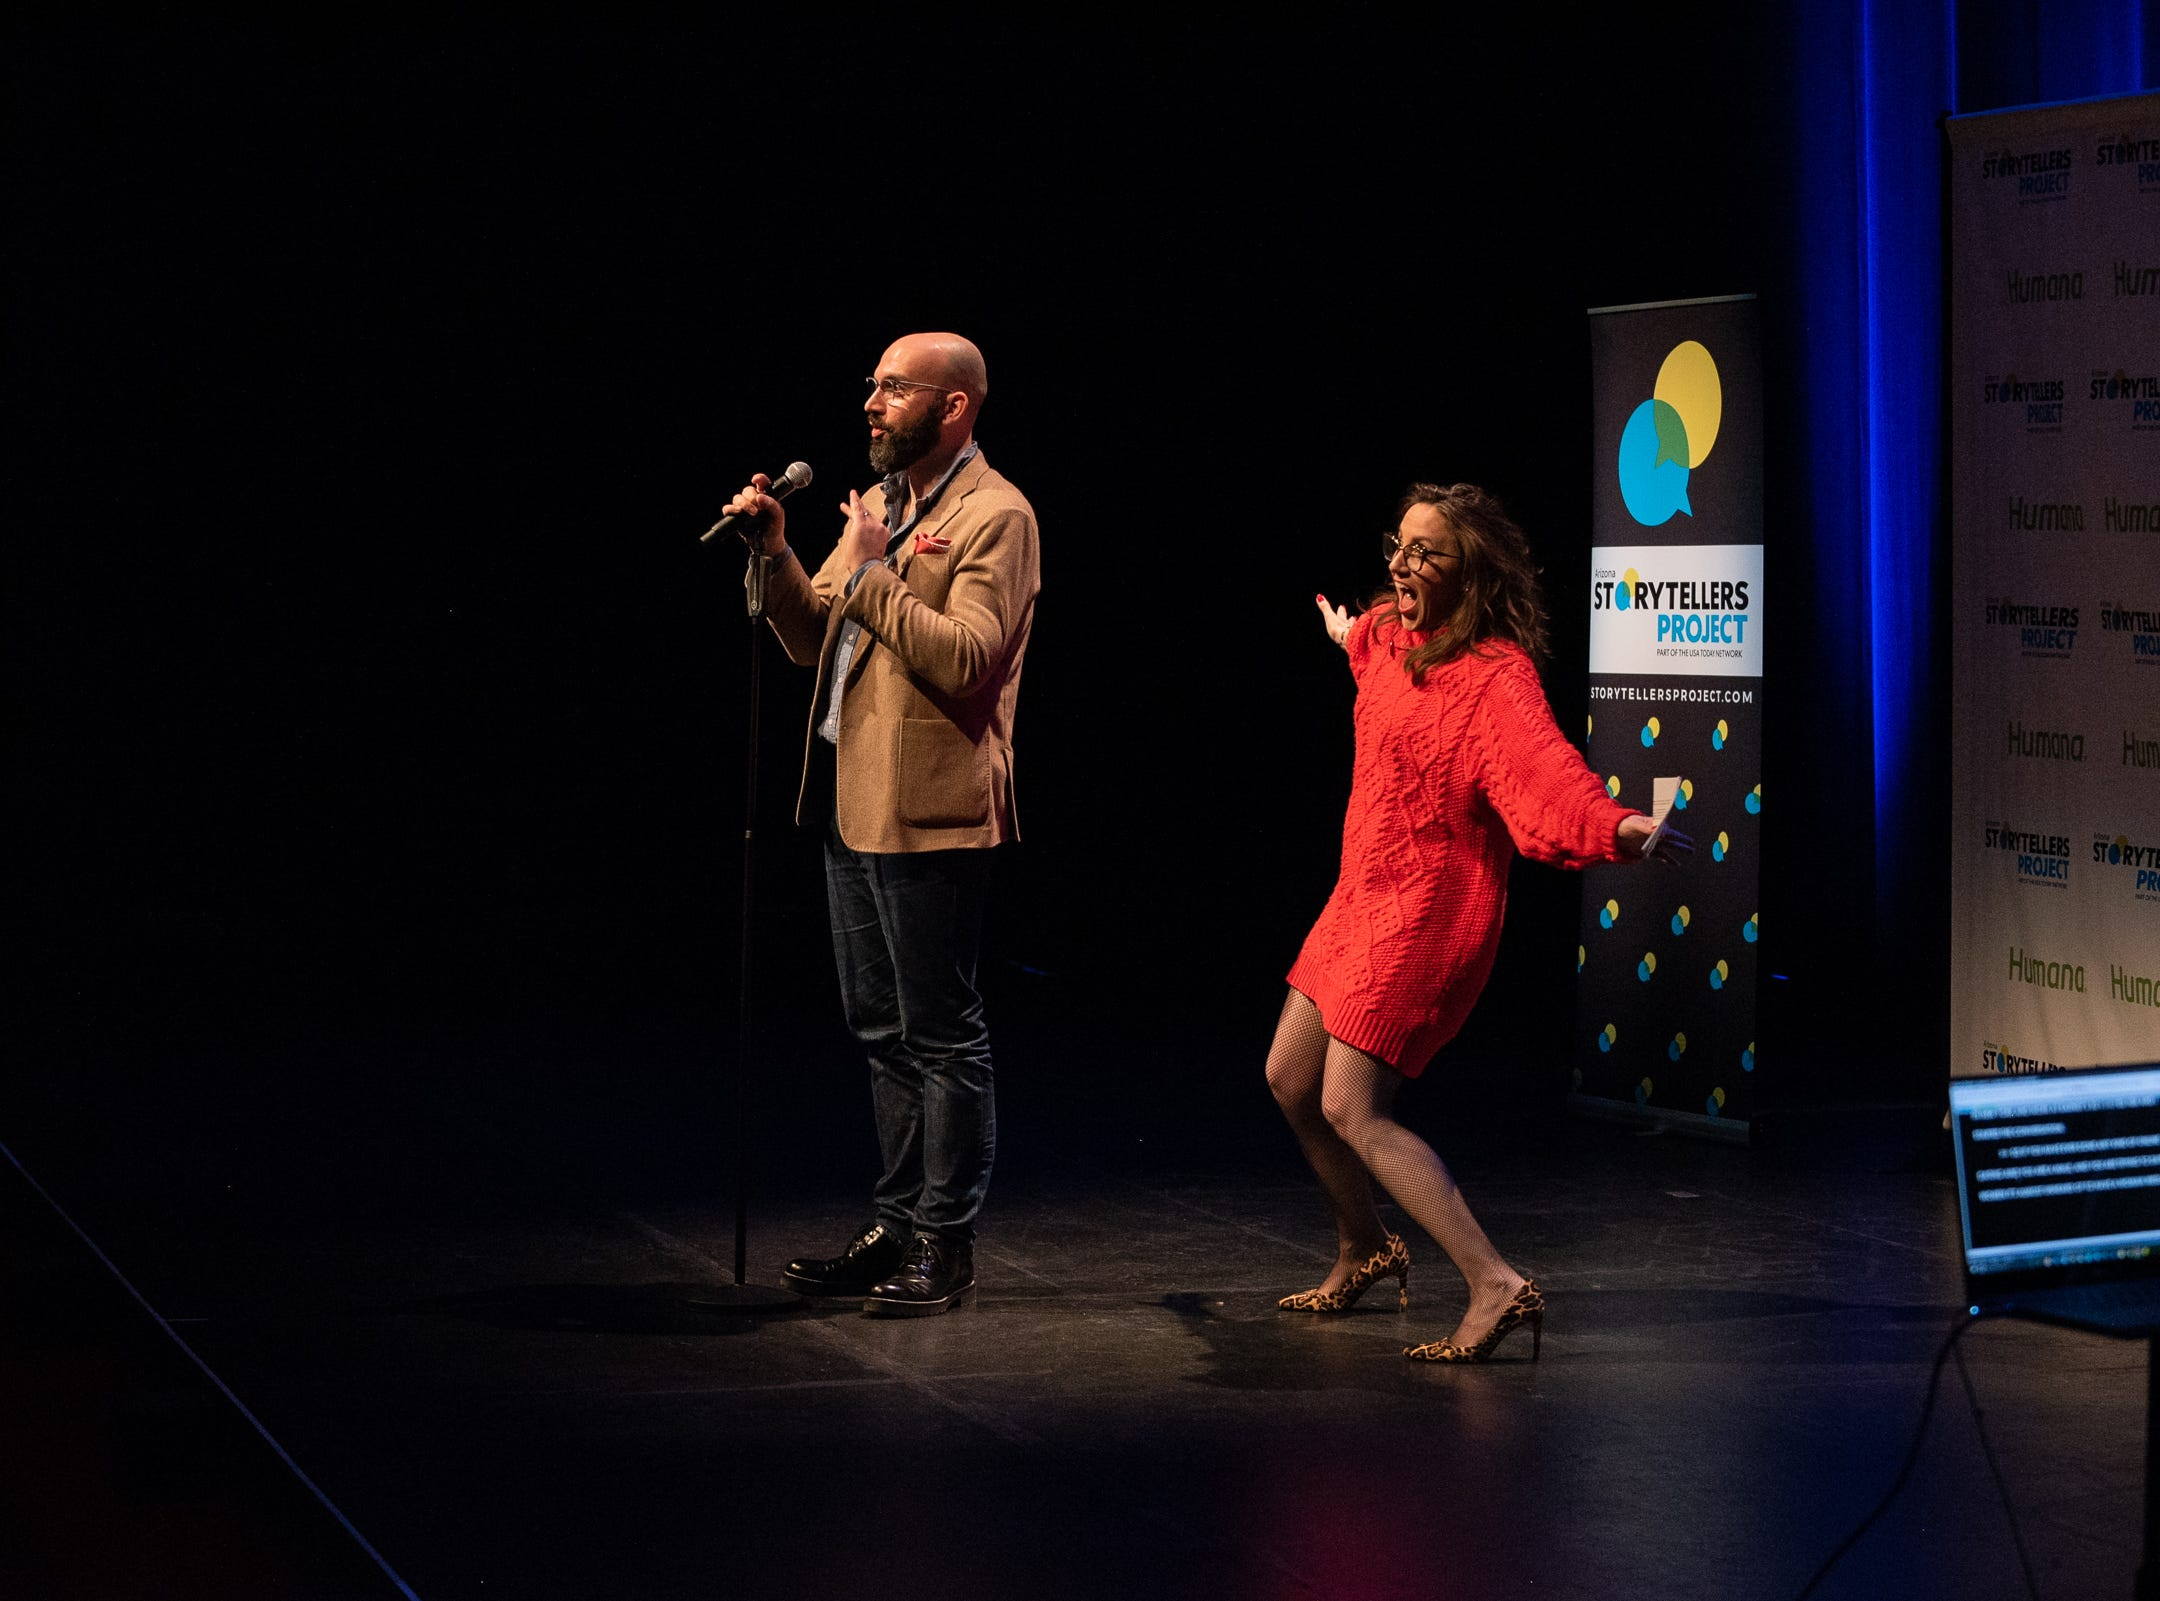 Vince Malouf and Megan Finnerty tell their tale during The Storytellers Project presents Romance - or Not at the Scottsdale Center for Performing Arts on Wednesday, Feb. 13, 2019.